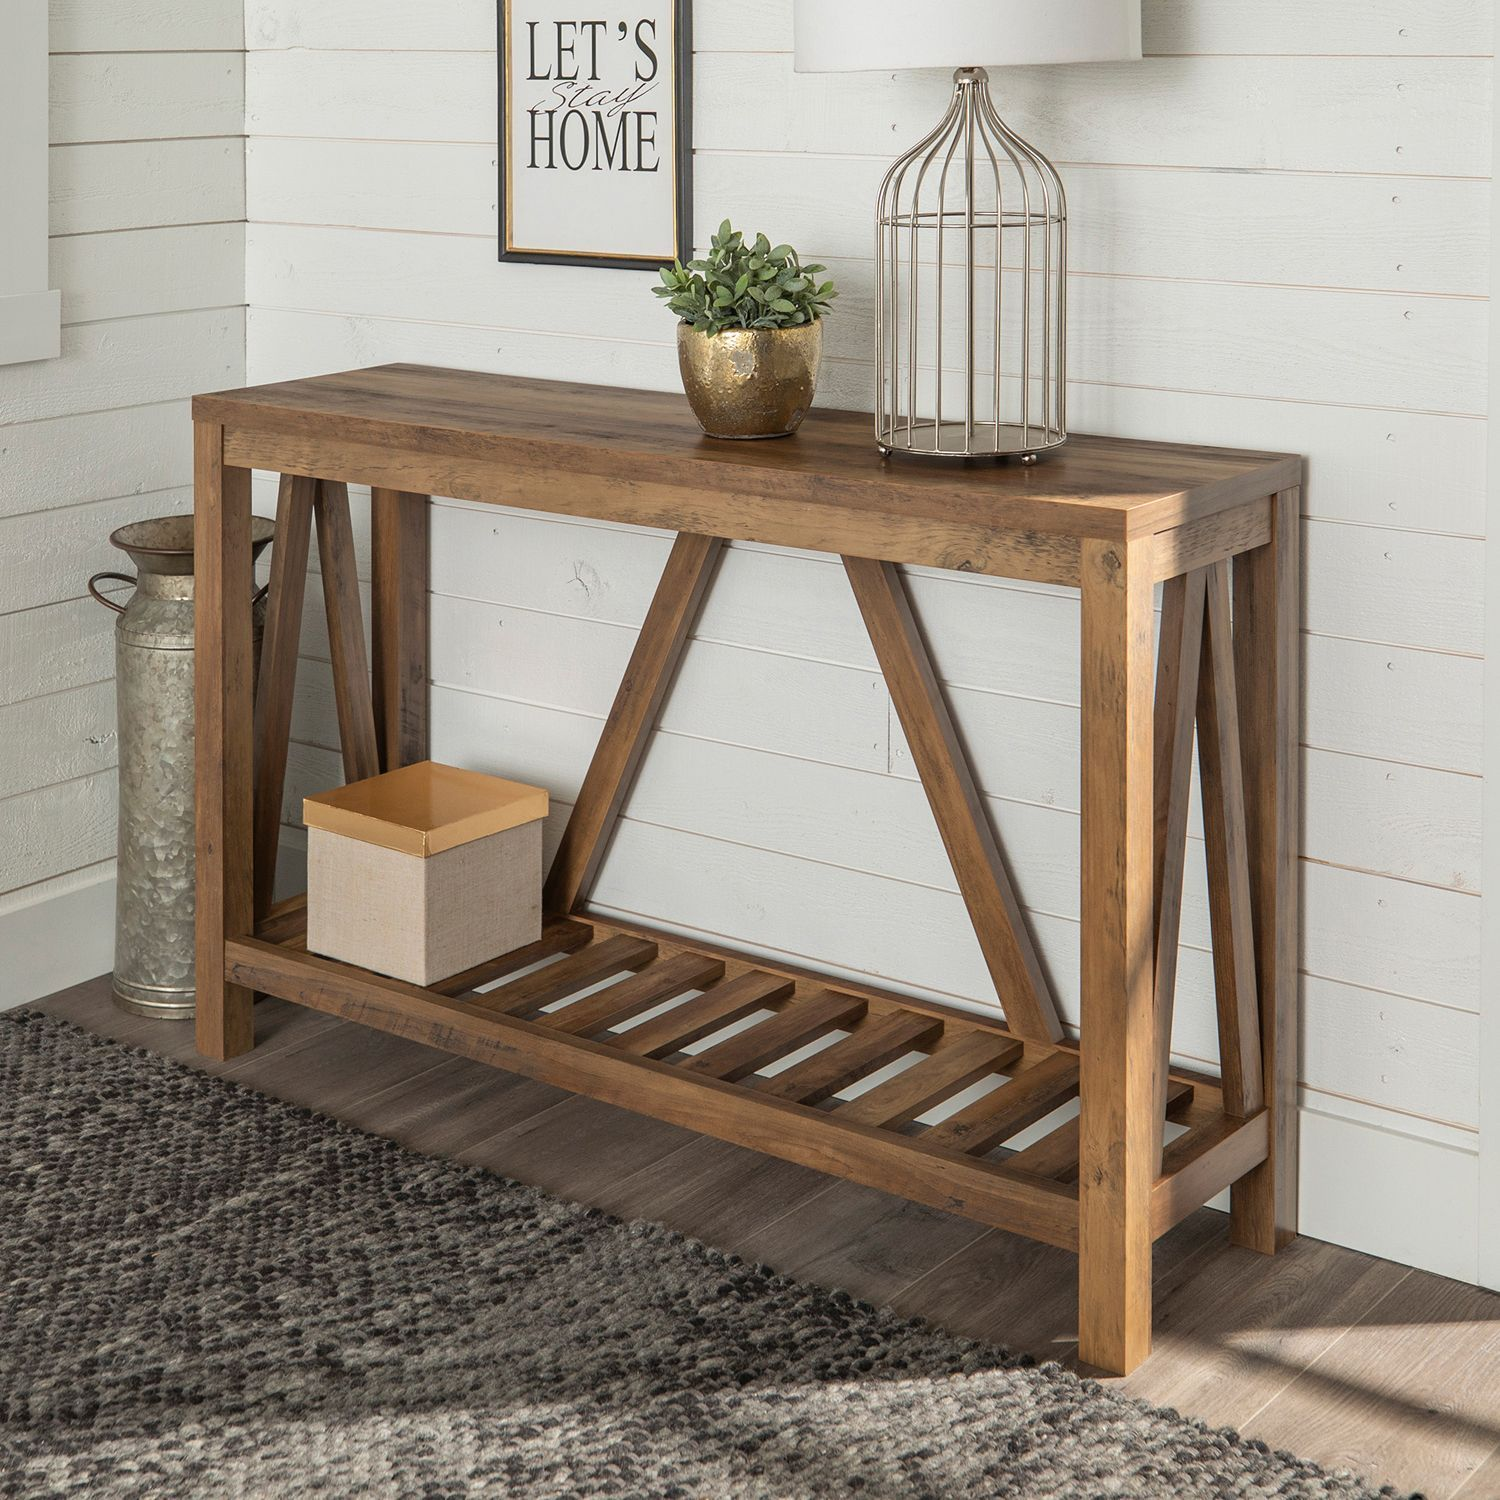 Living Room Decor Rustic Rustic Console Tables Oak Console Table